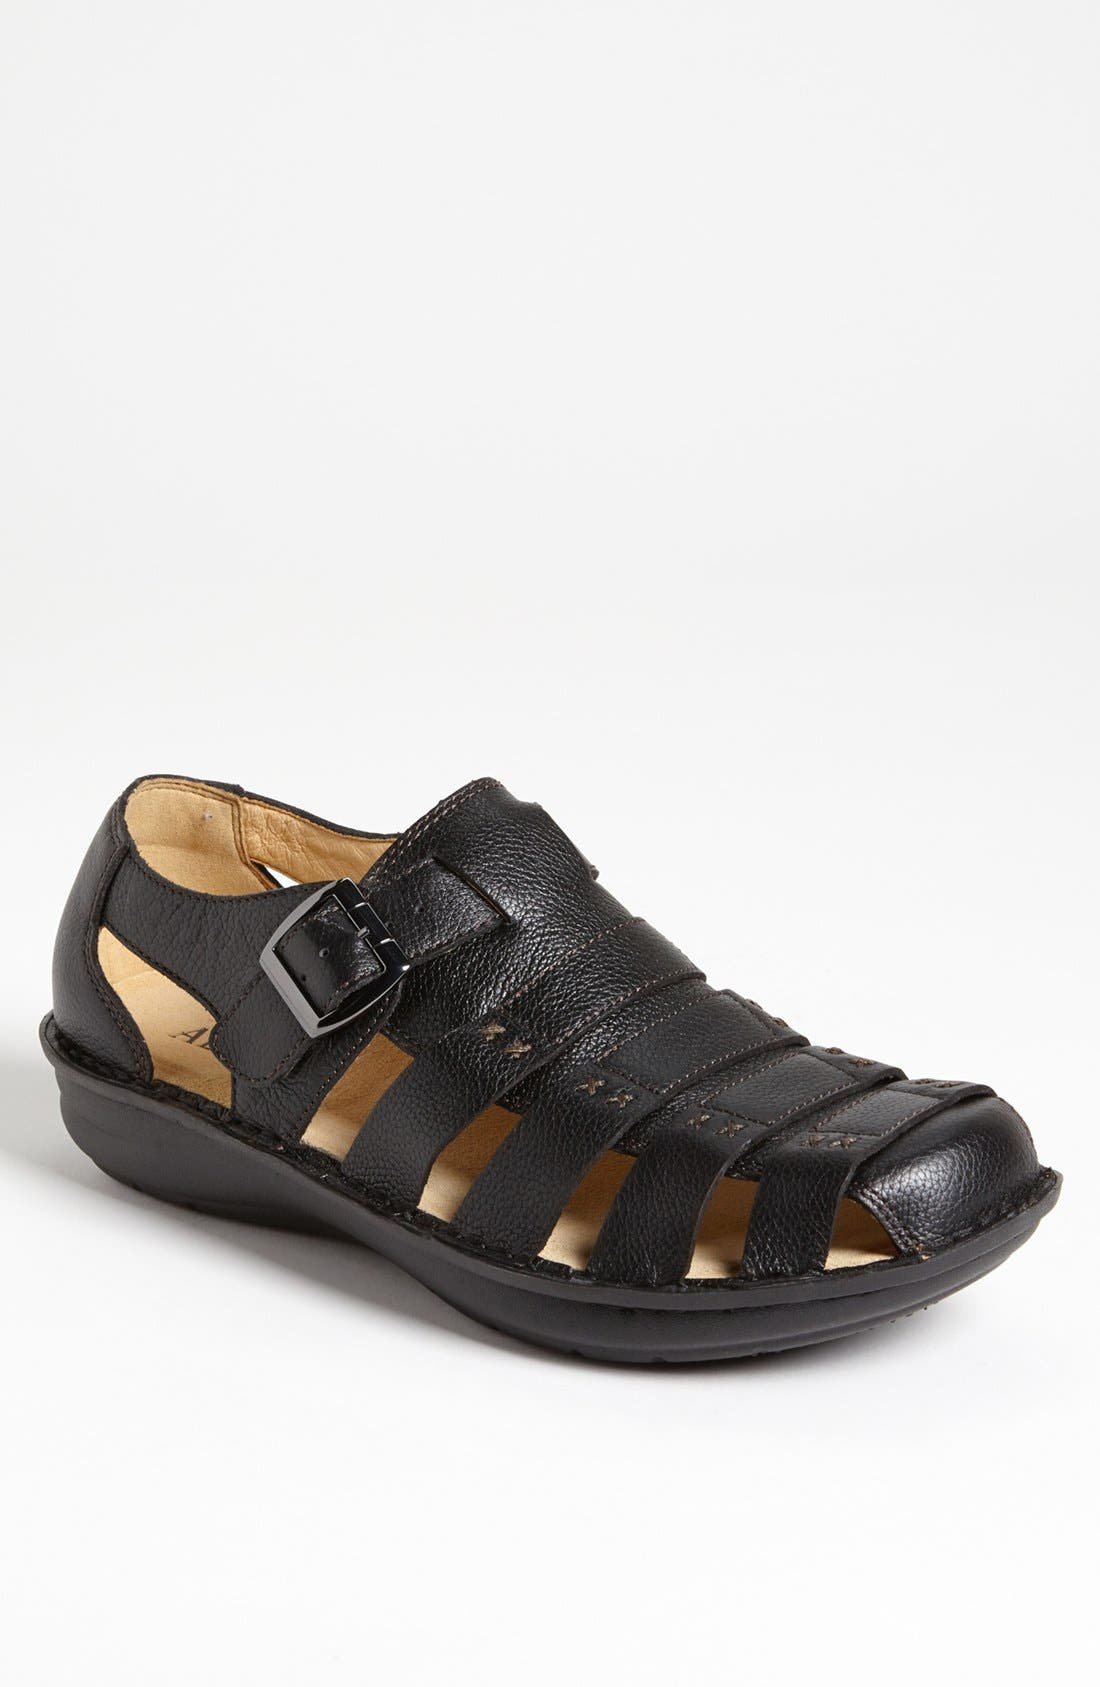 Main Image - Alegria 'Martinique' Sandal (Men)